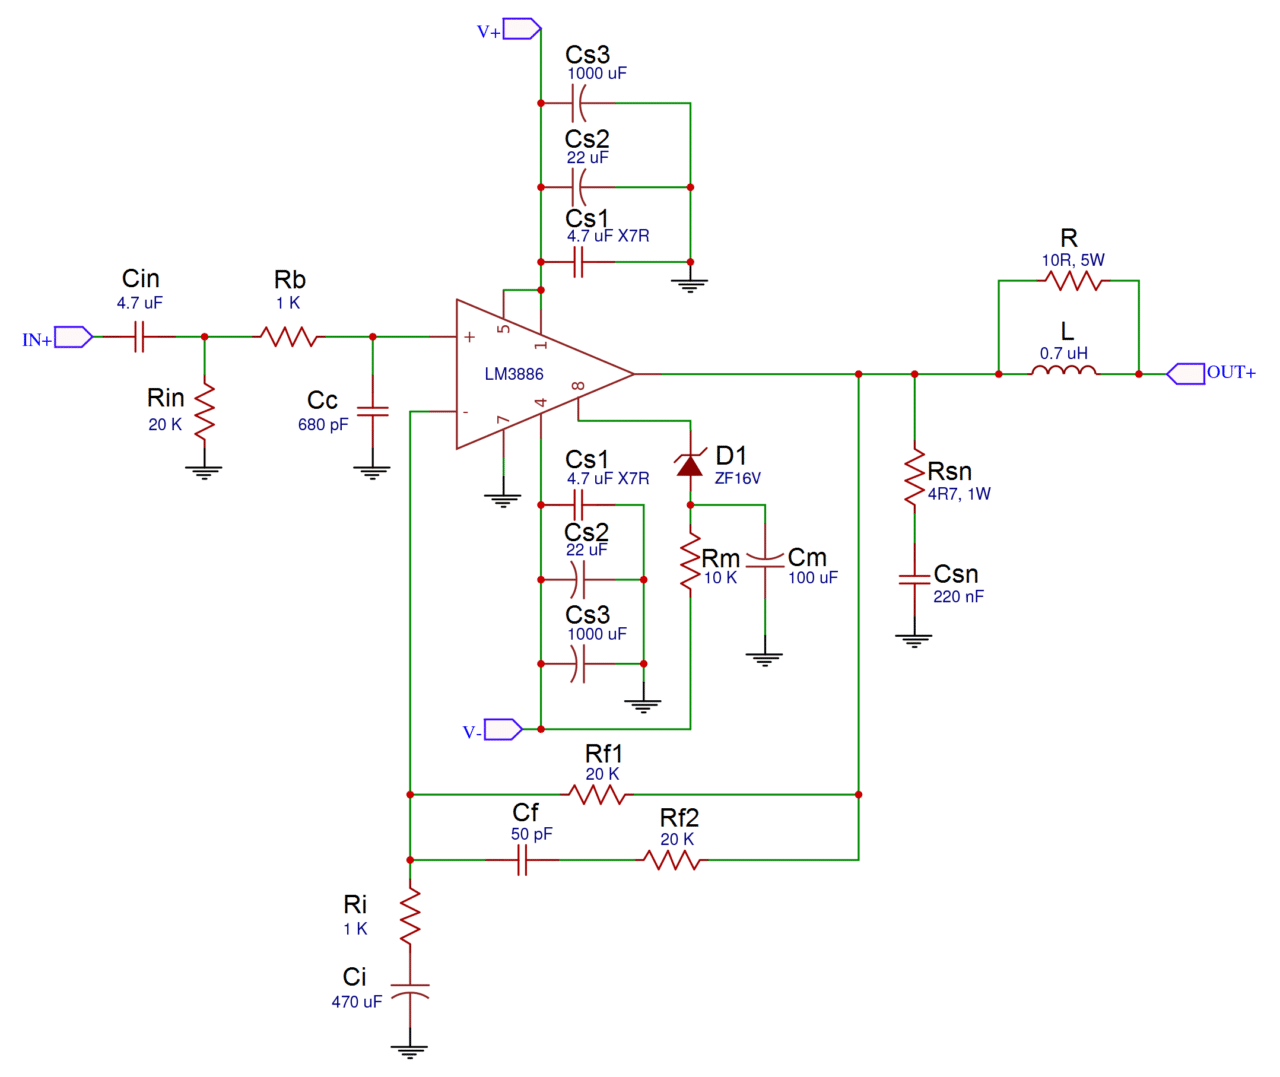 audio amplifier circuit diagram with layout wiring com a complete guide to design and build hi fi lm3886